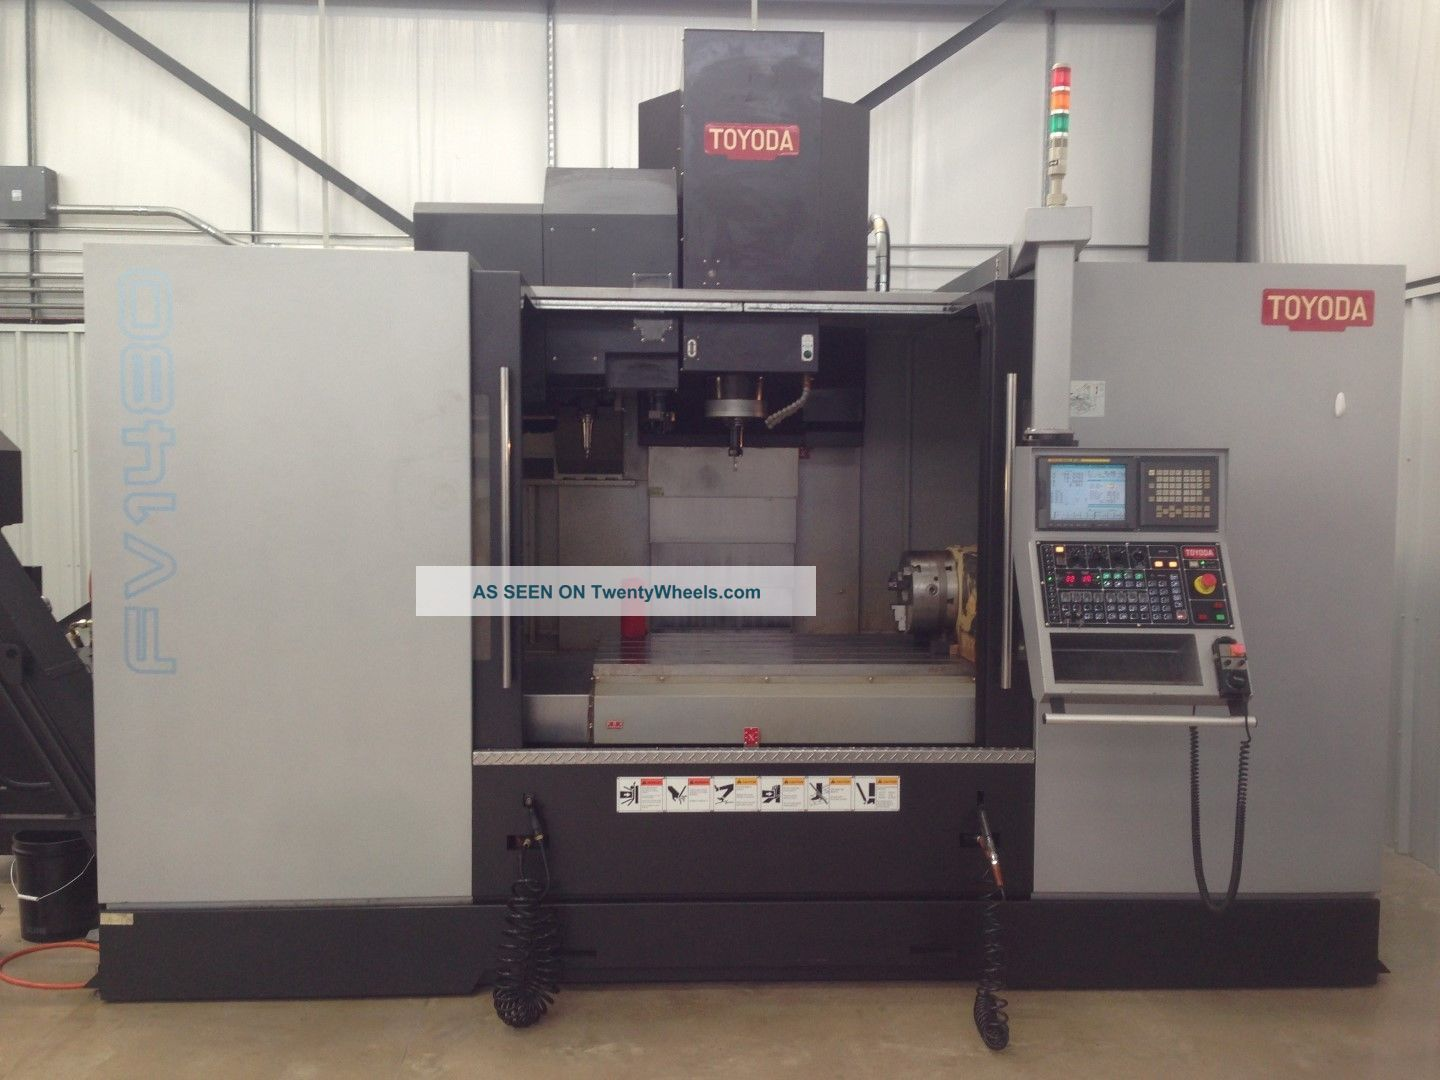 Toyoda Fv - 1480 4 Axis Cnc Vertical Mill Machining Center Fanuc Cat 50 2011 Milling Machines photo